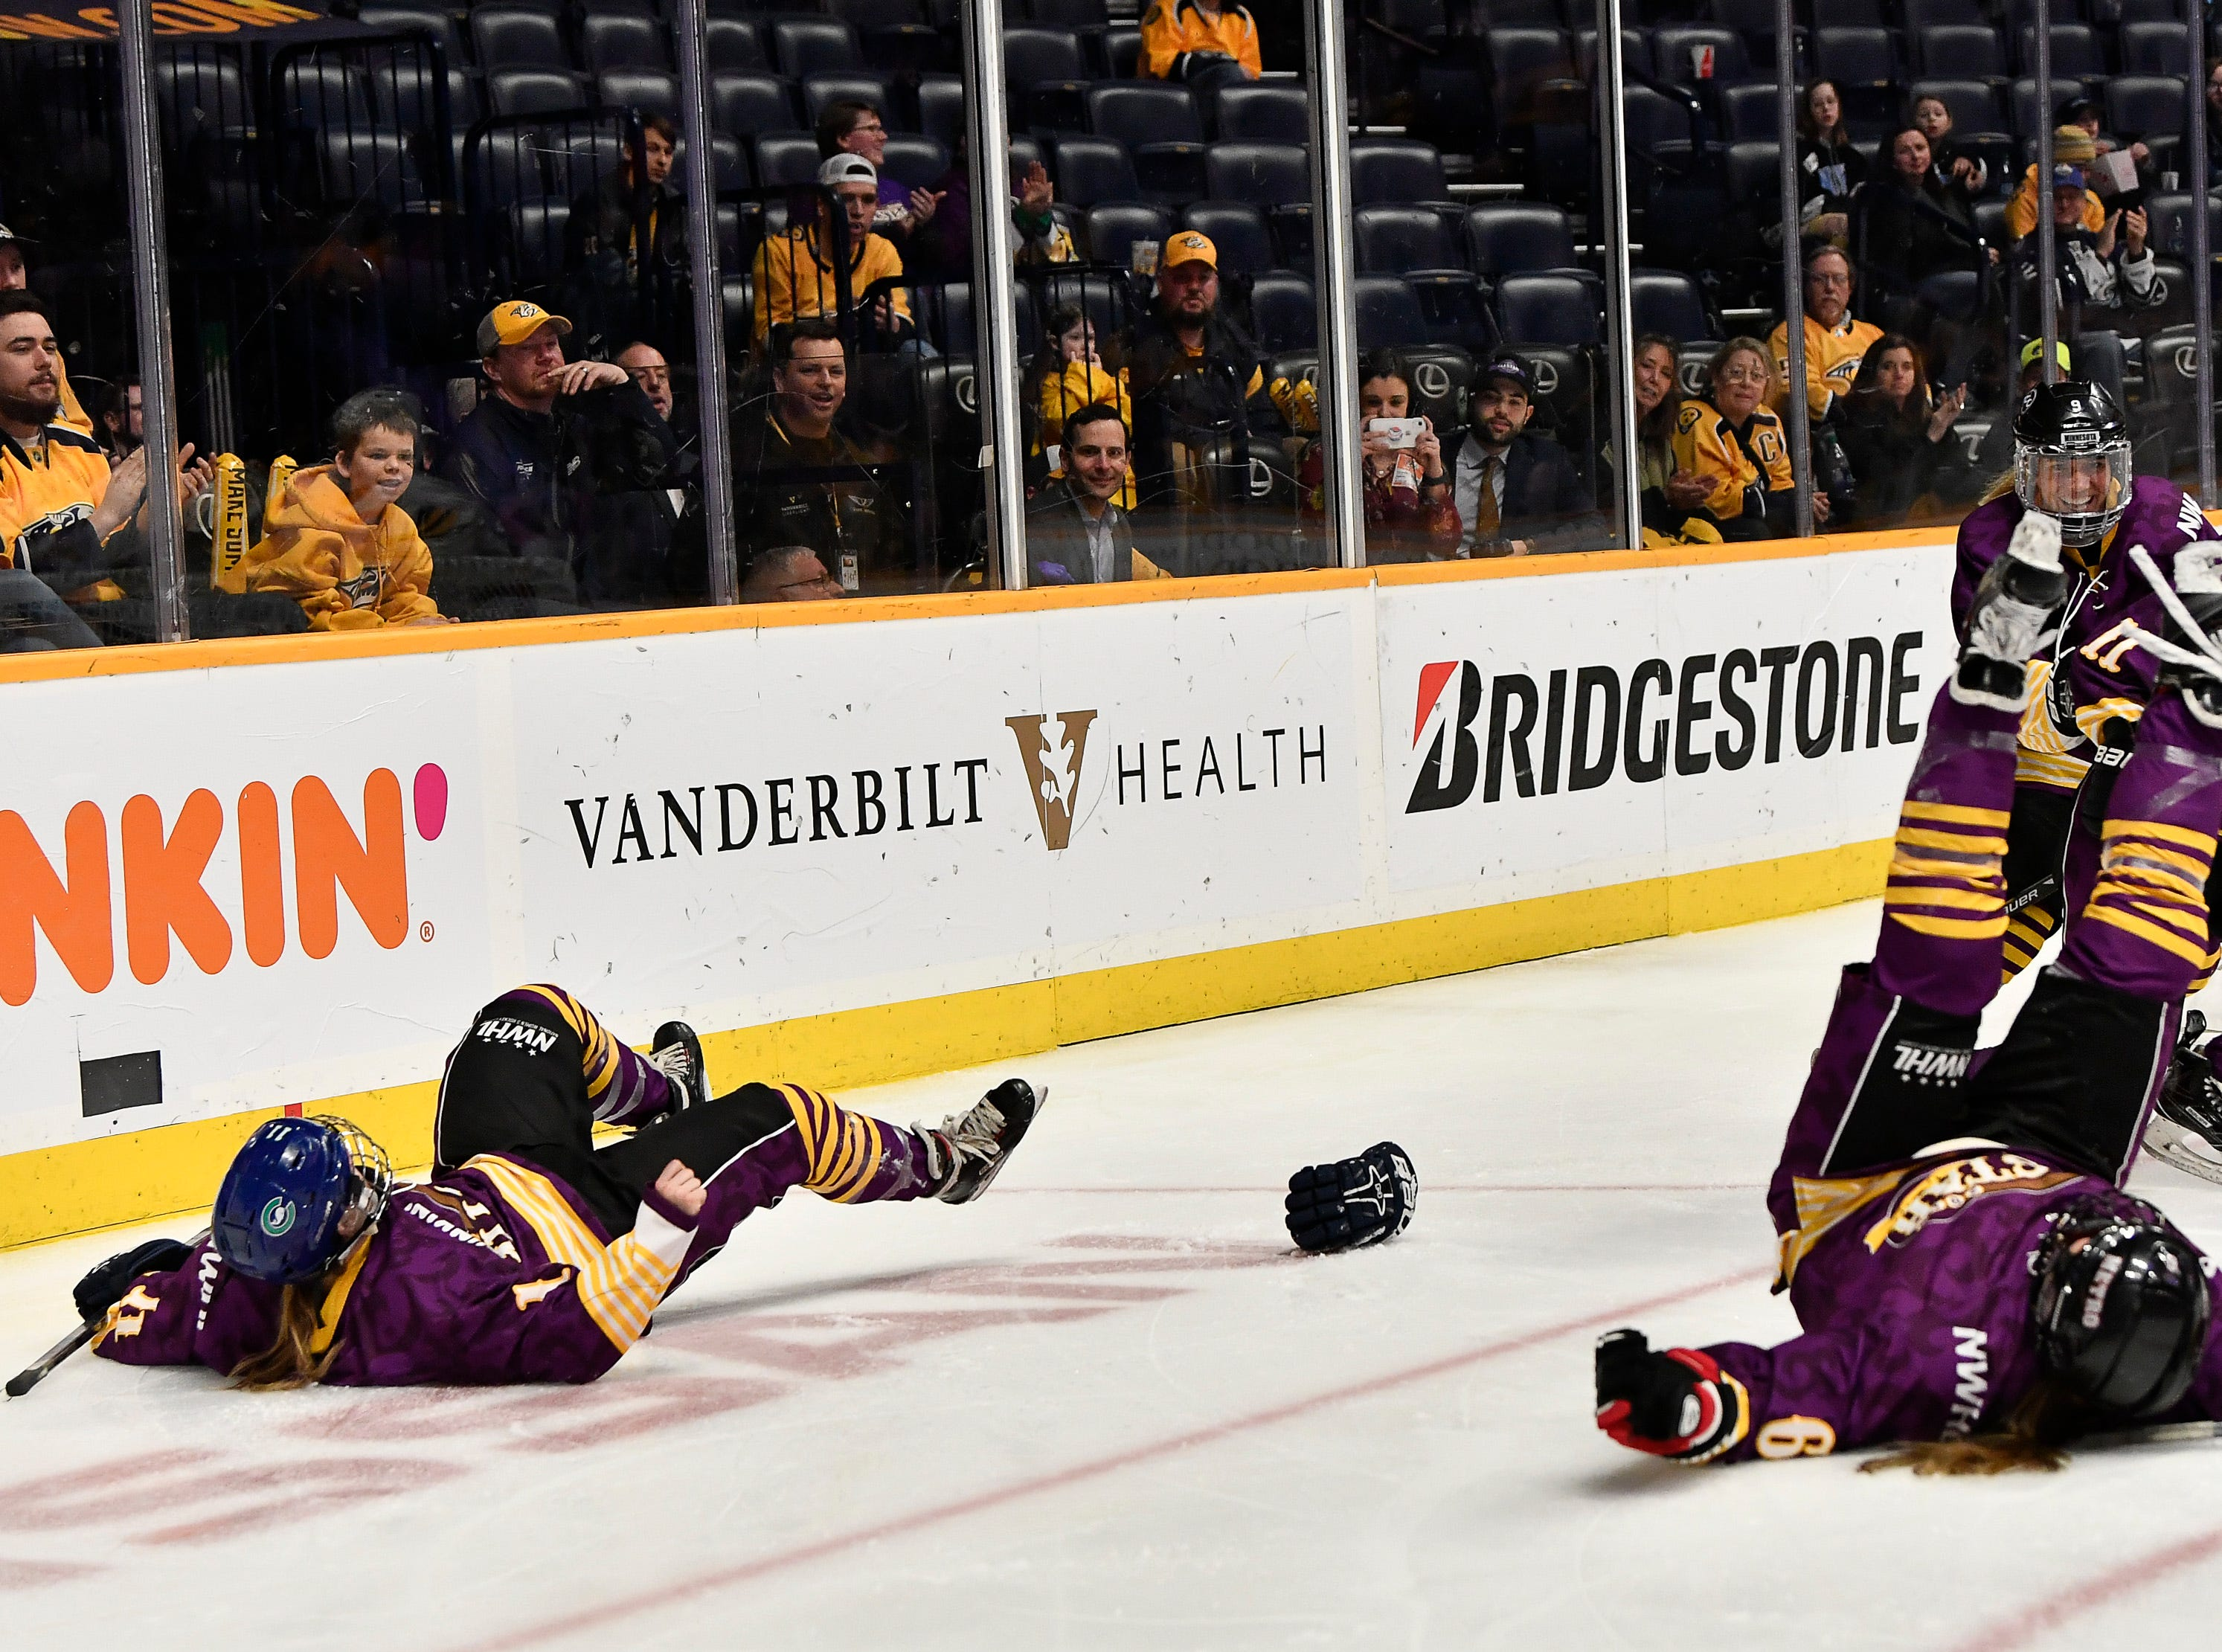 Team Stecklein's Emily Fluke and teammates celebrate their goal during the second half of the NWHL All Star game at Bridgestone Arena Sunday Feb. 10, 2019 in Nashville, Tenn.